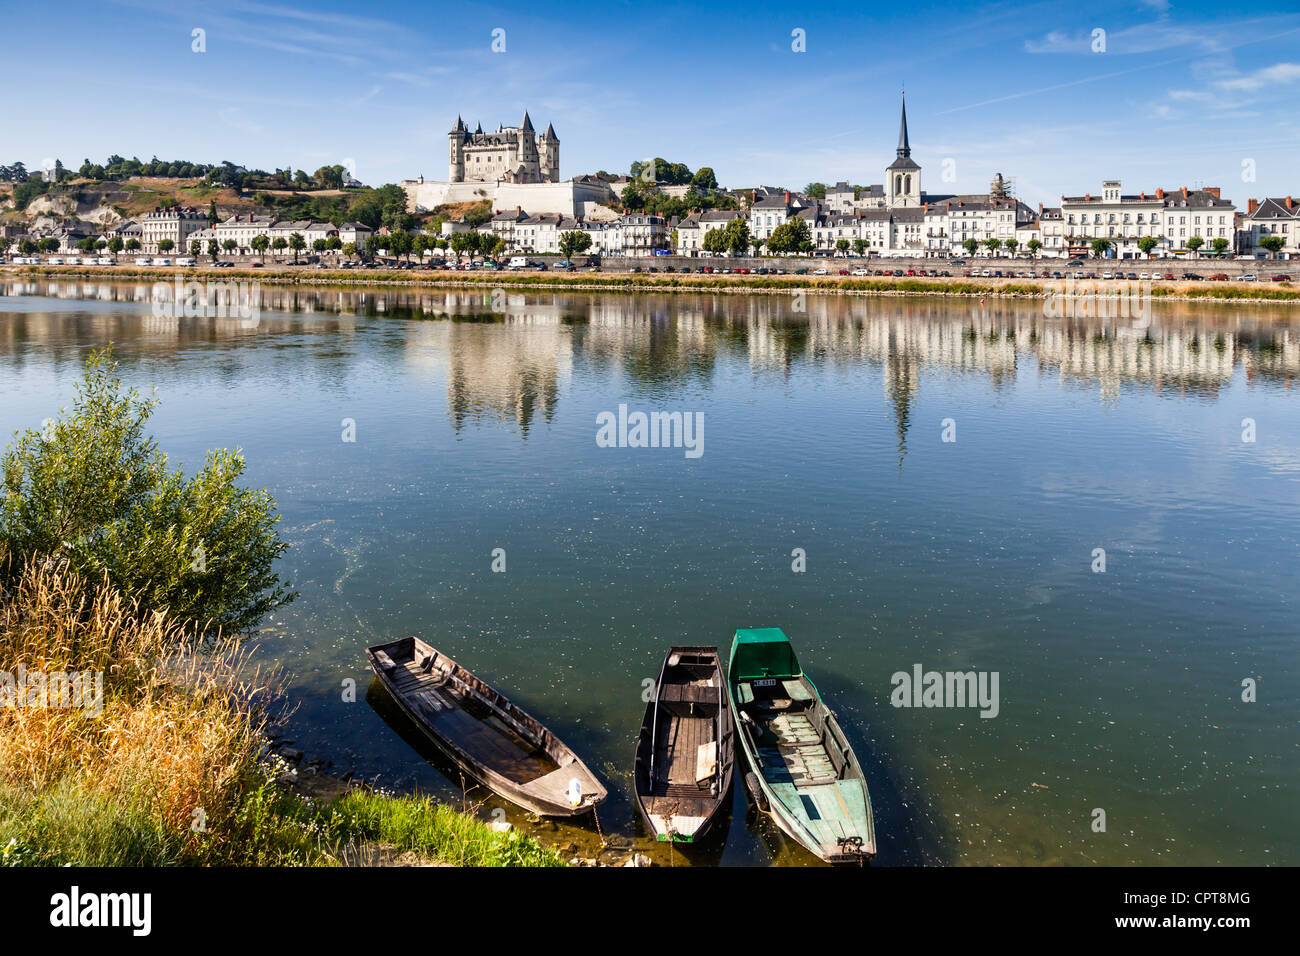 The town of Saumur reflecting in the River Loire on a sunny summer morning. - Stock Image